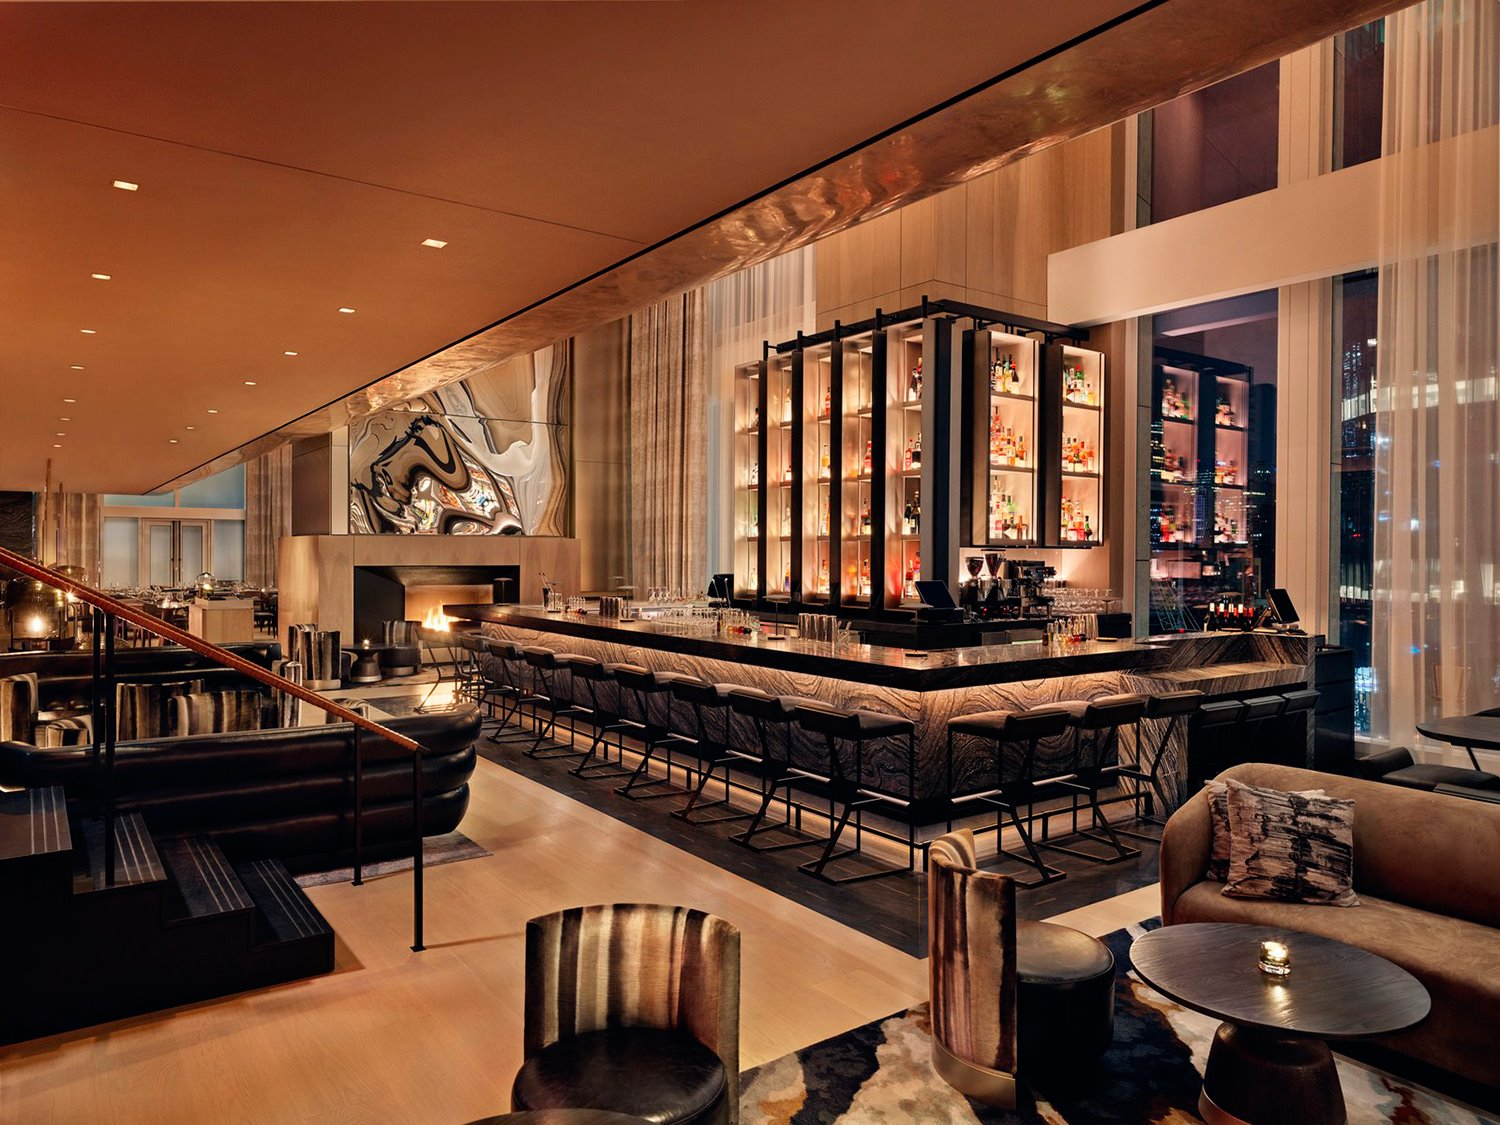 bar-Fireplace Hero-del-hotel-Equinox-de-Nueva-York